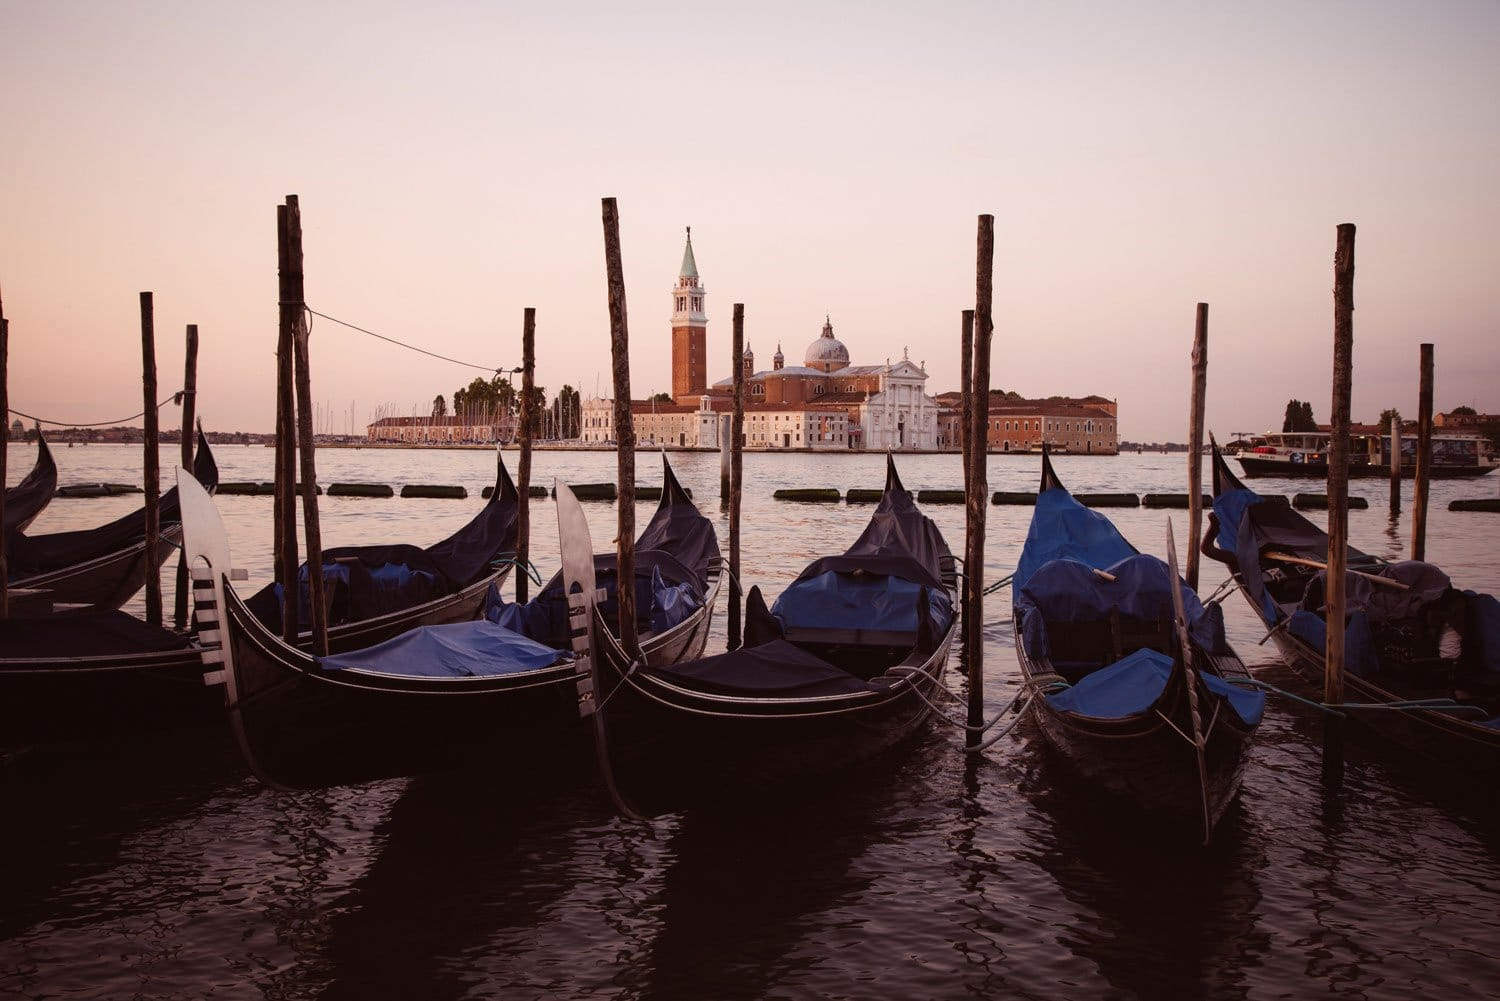 Cityscape-Photography-Summer-in-Venice-Presetpro.com